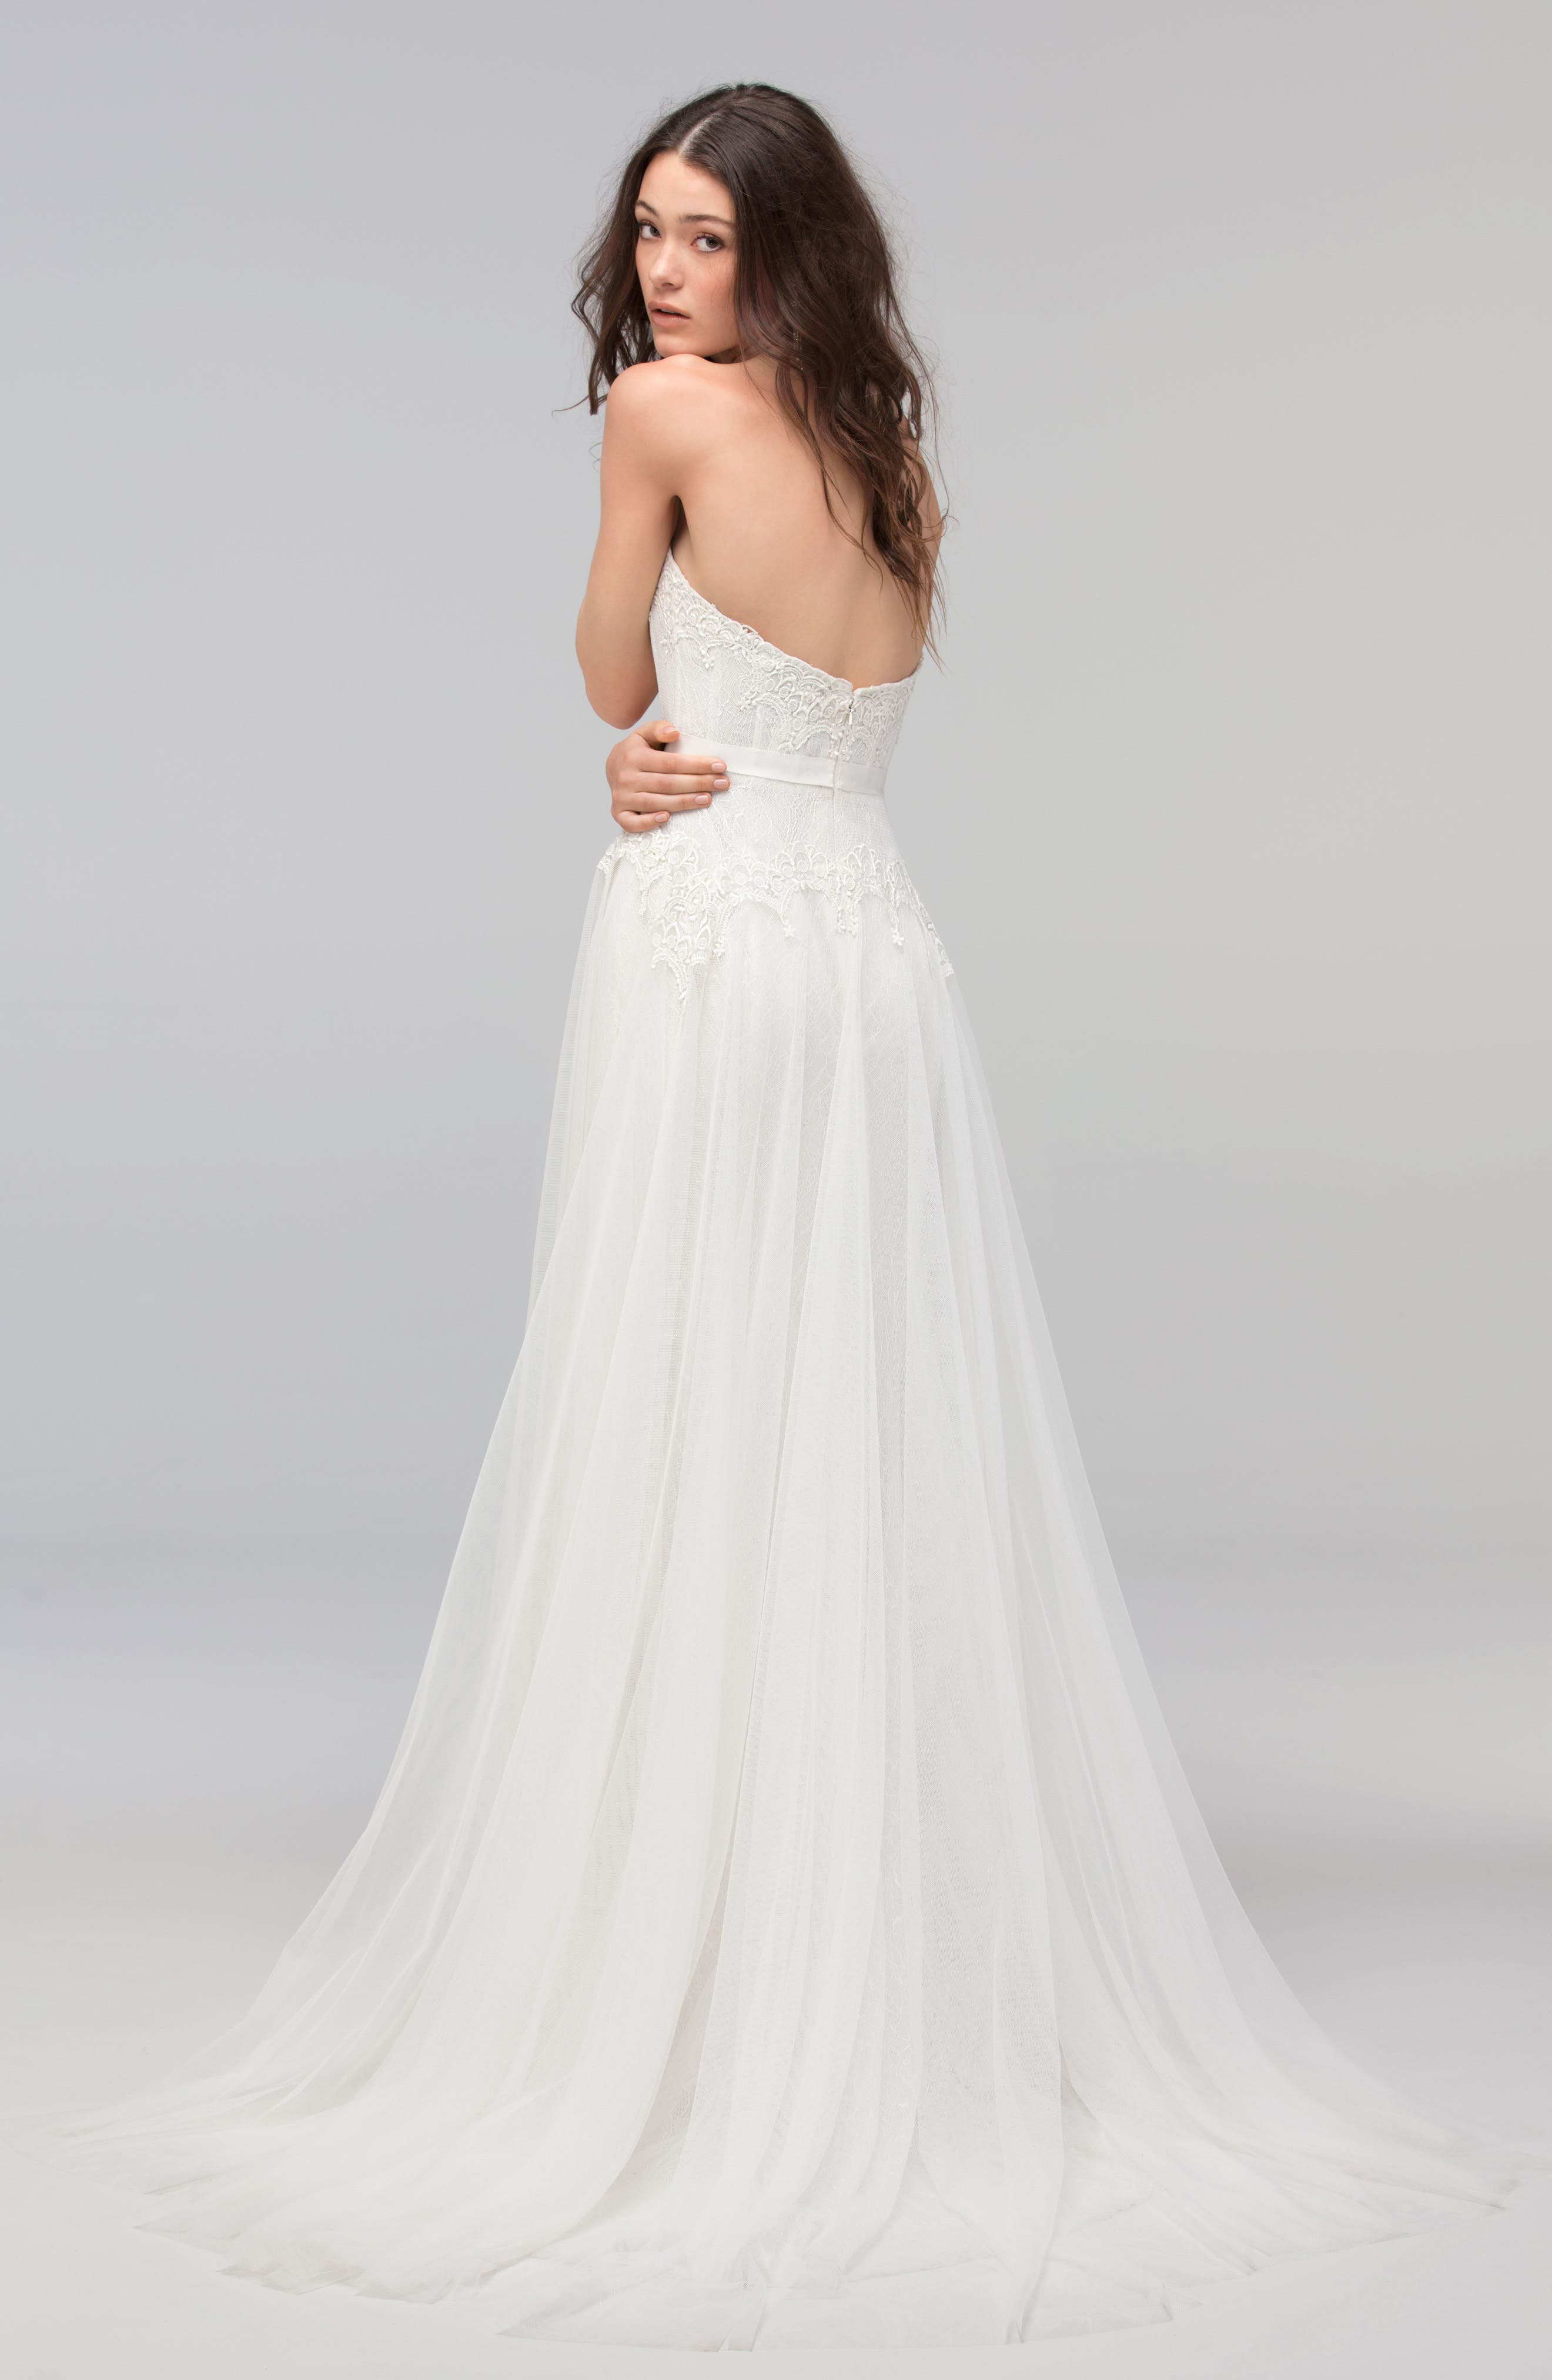 Lupine Strapless Chantilly Lace & Net Gown,                             Alternate thumbnail 2, color,                             IVORY/OYSTER